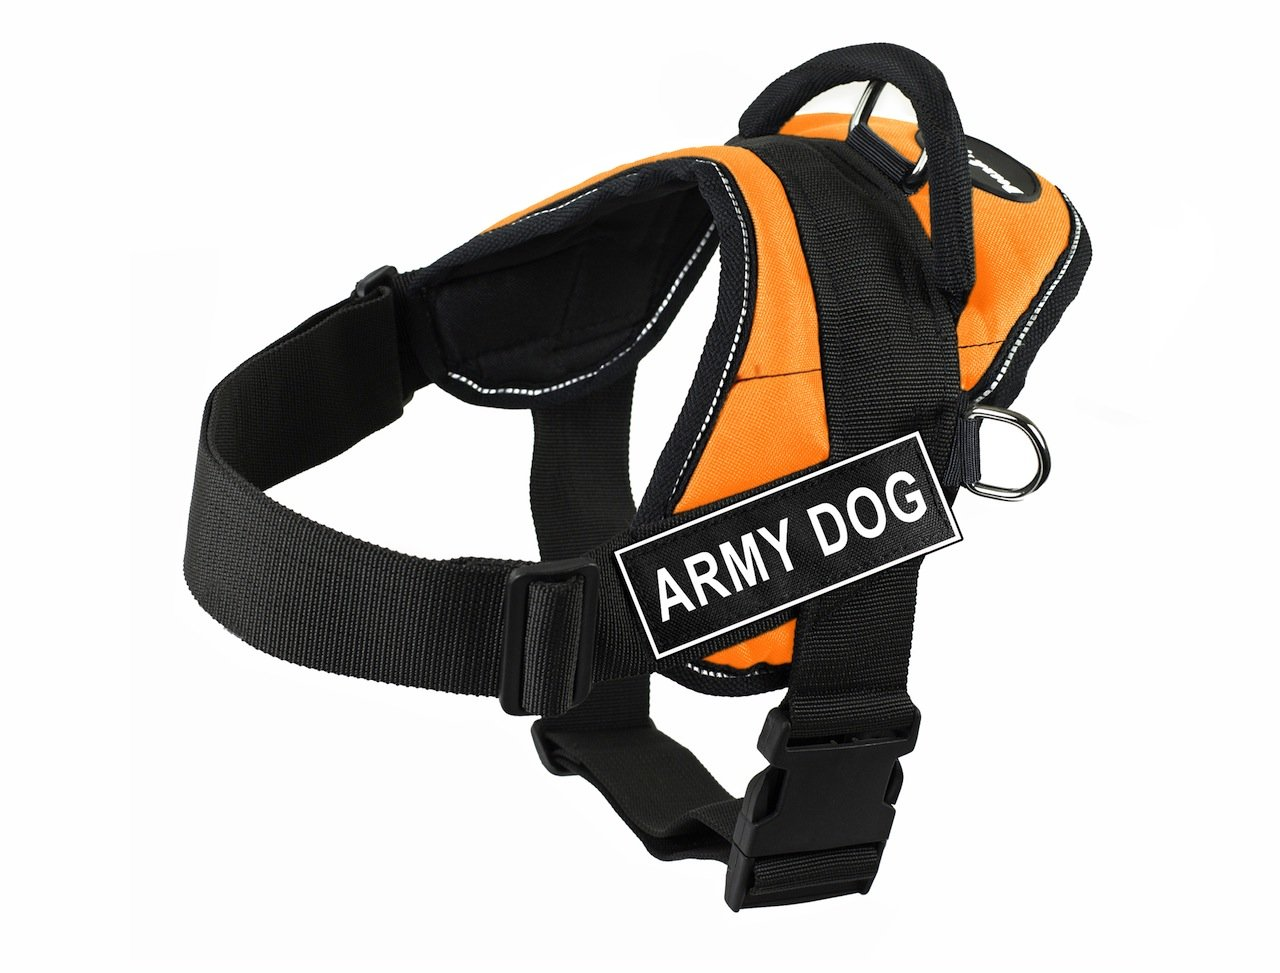 Dean & Tyler Fun Army Dog X-Small orange Harness with Reflective Trim